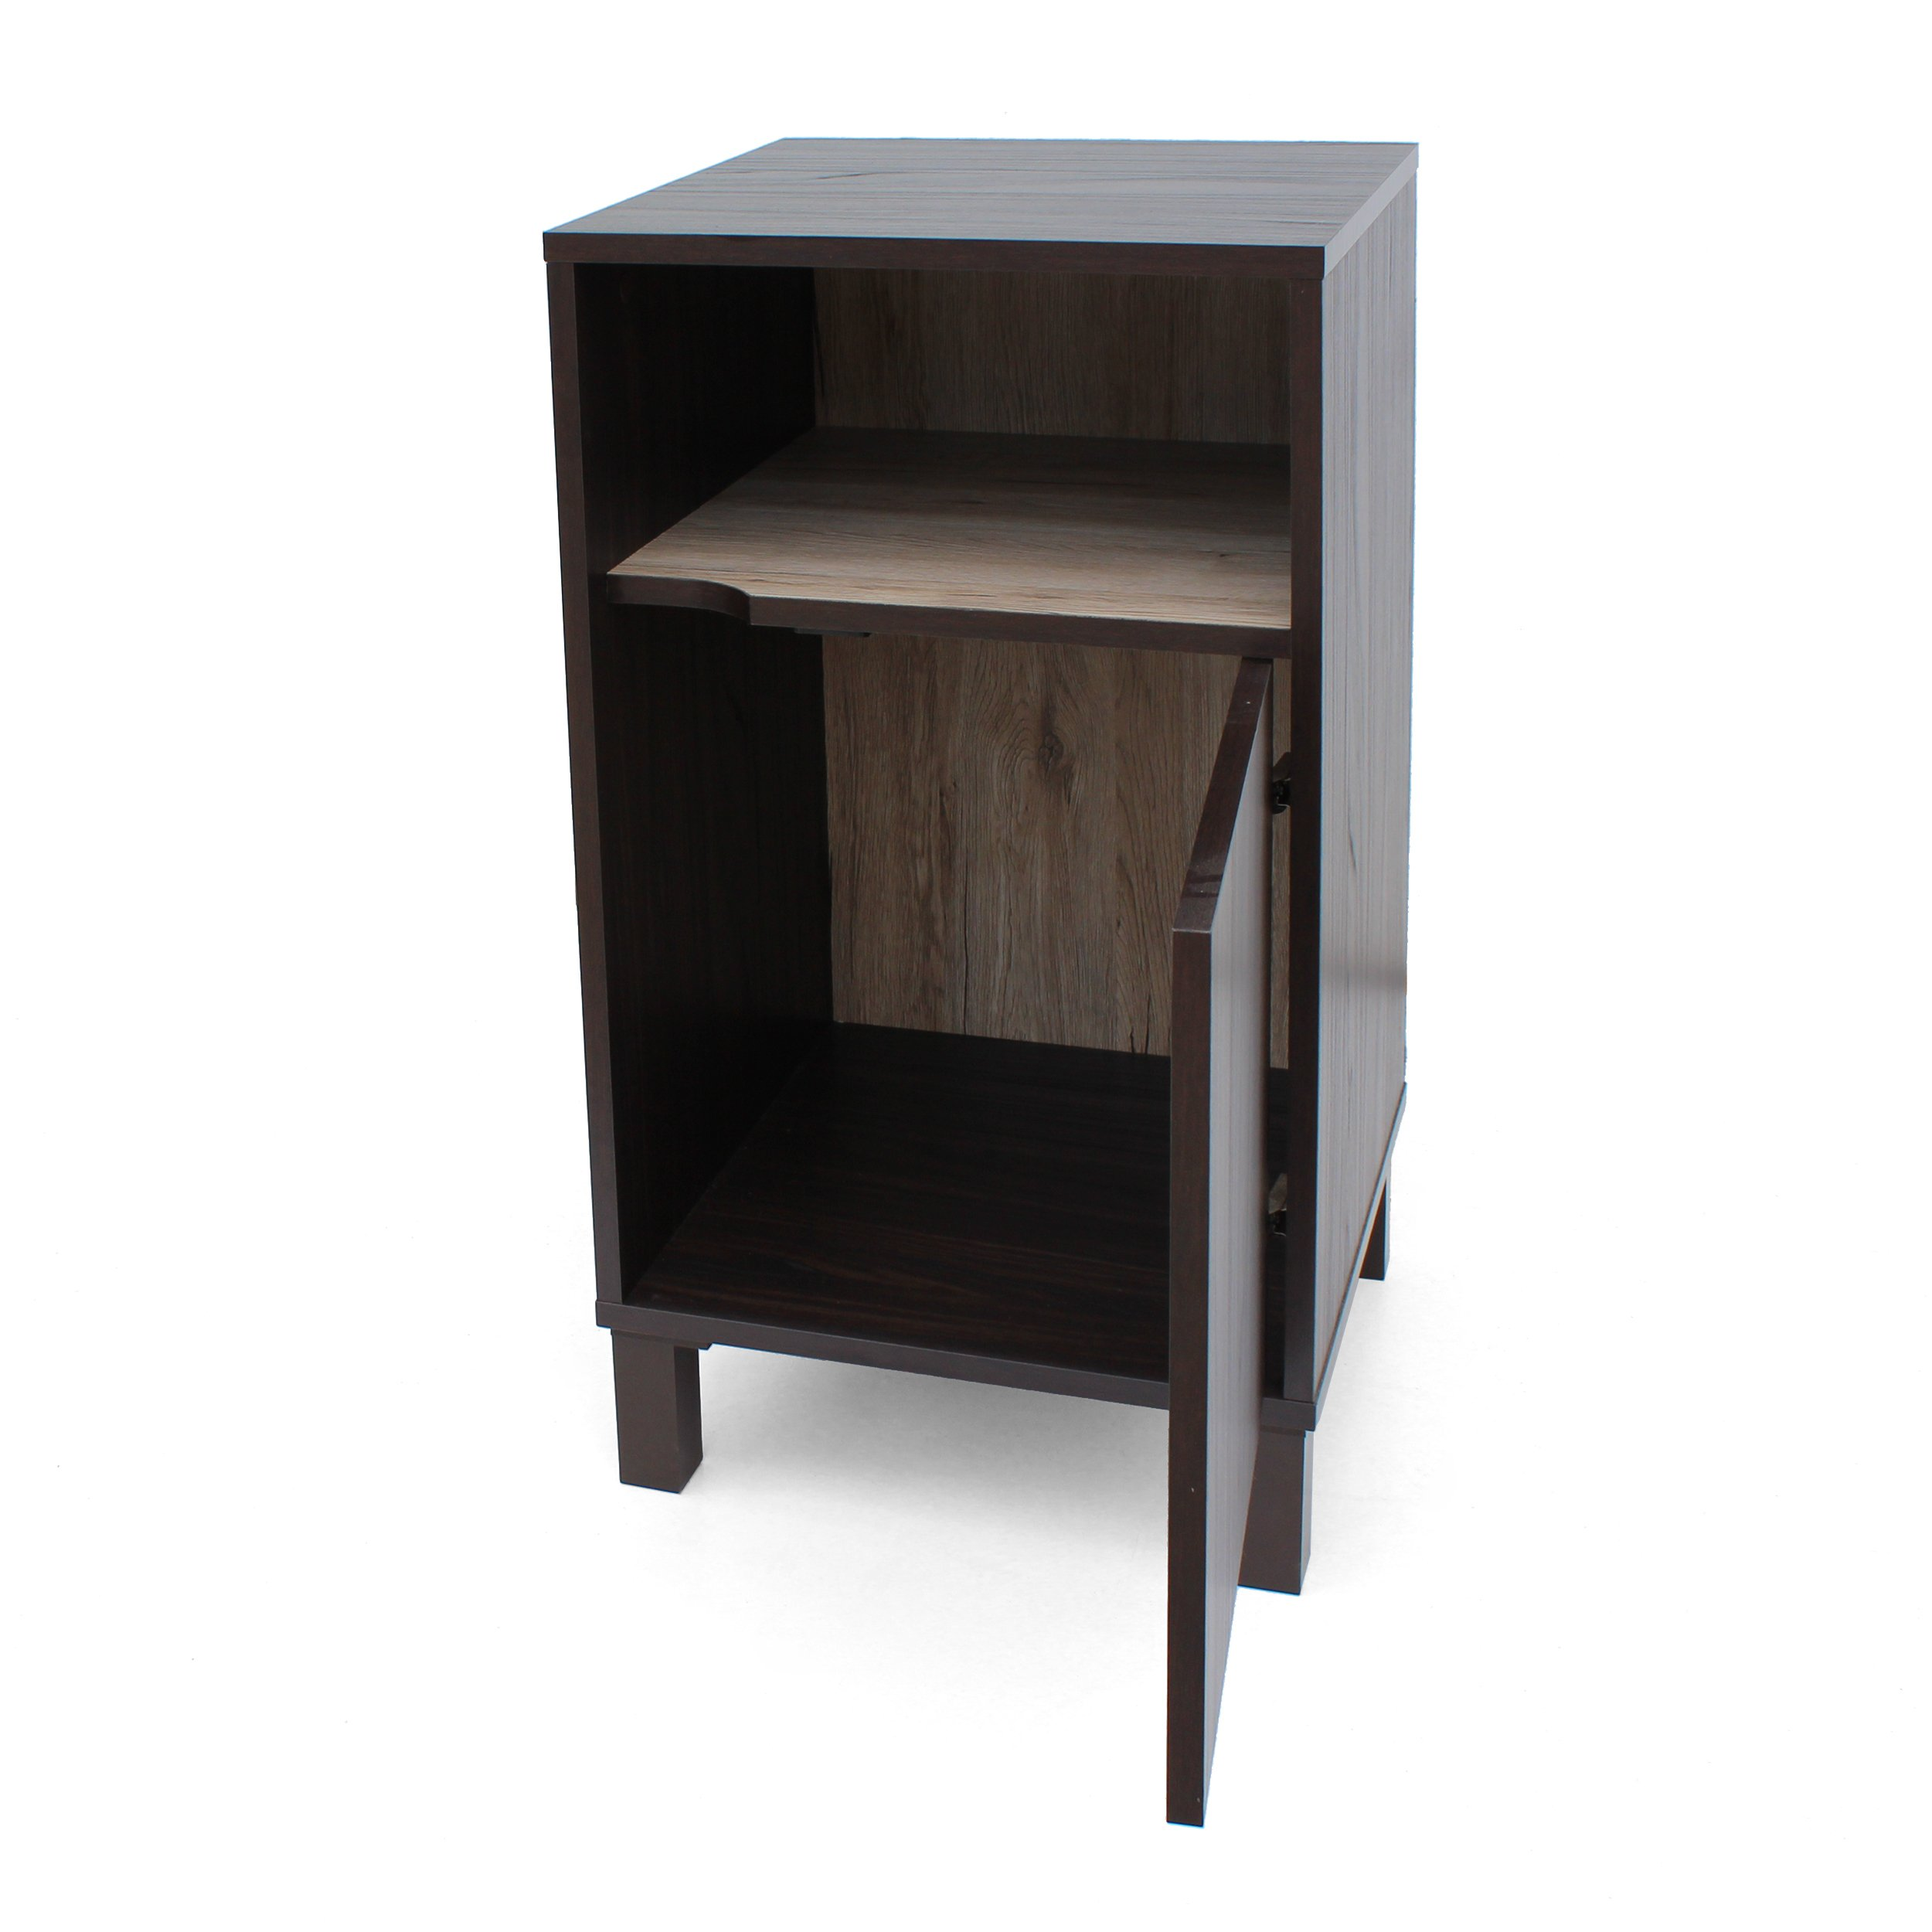 Christopher Knight Home 303655 Linnea Wood Cabinet, Walnut/Sanremo Oak/Brown by Christopher Knight Home (Image #6)